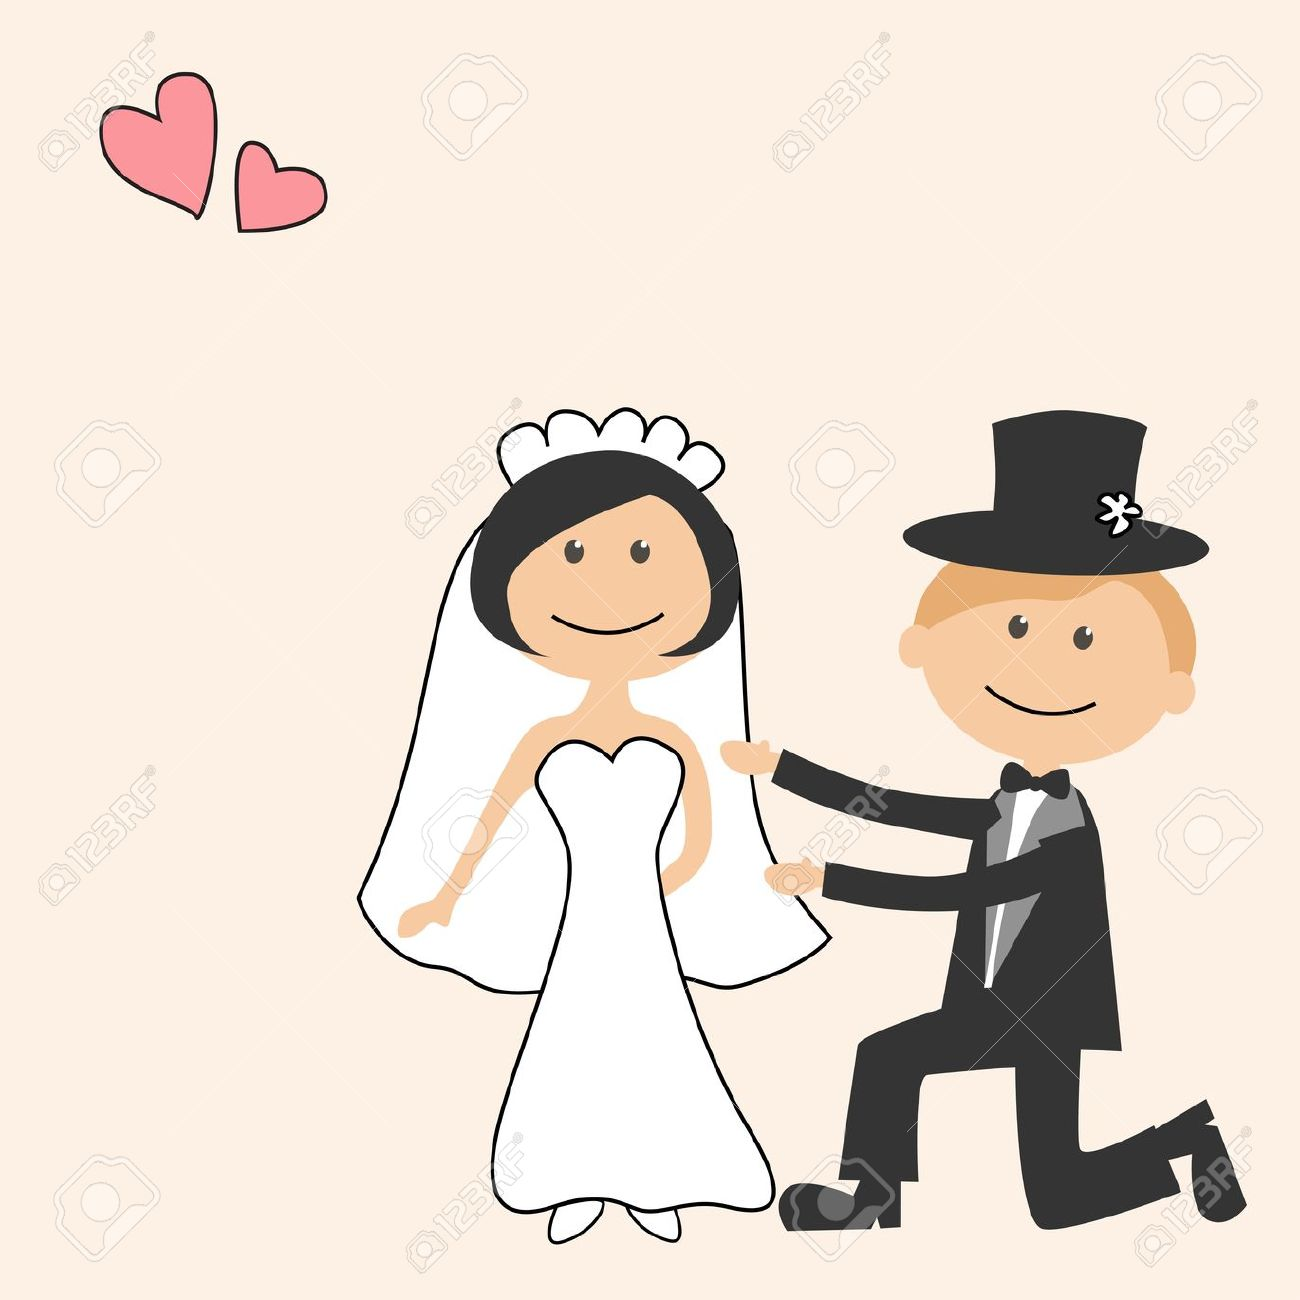 Bride clipart cute Cartoon groom free bride free